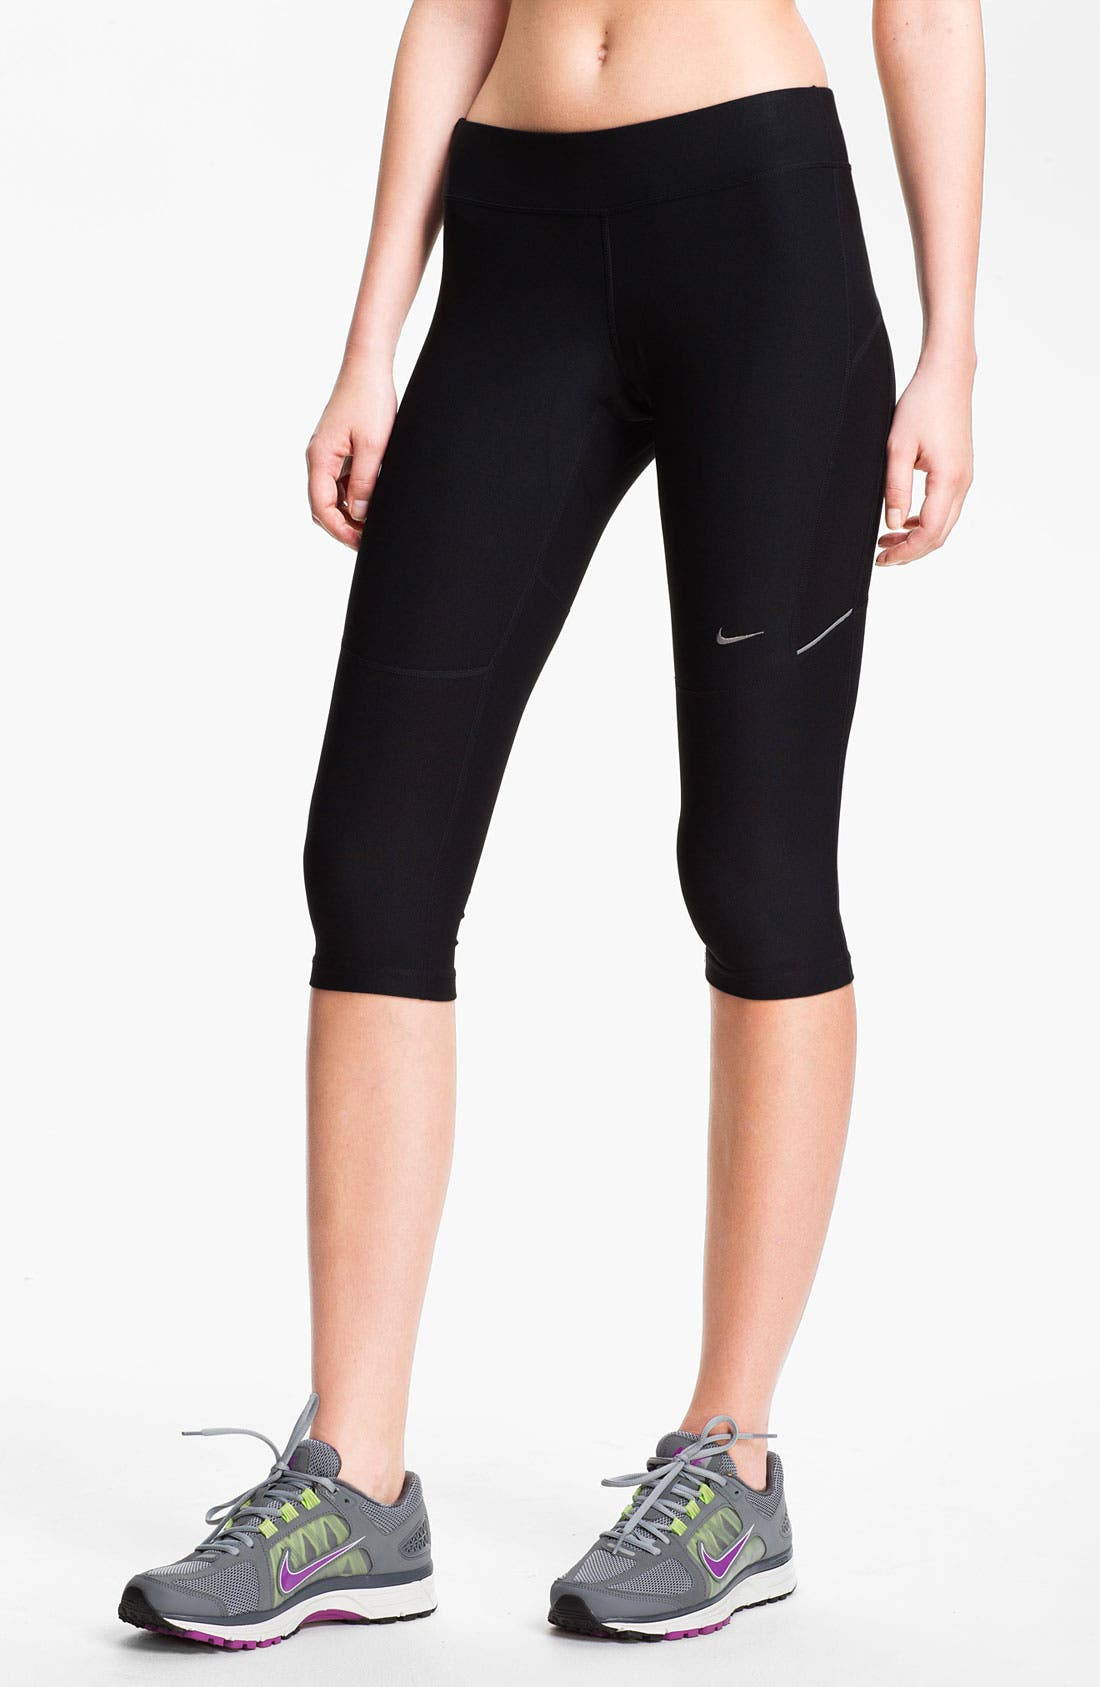 Alternate Image 1 Selected - Nike 'Filament' Capri Tights (Online Only)